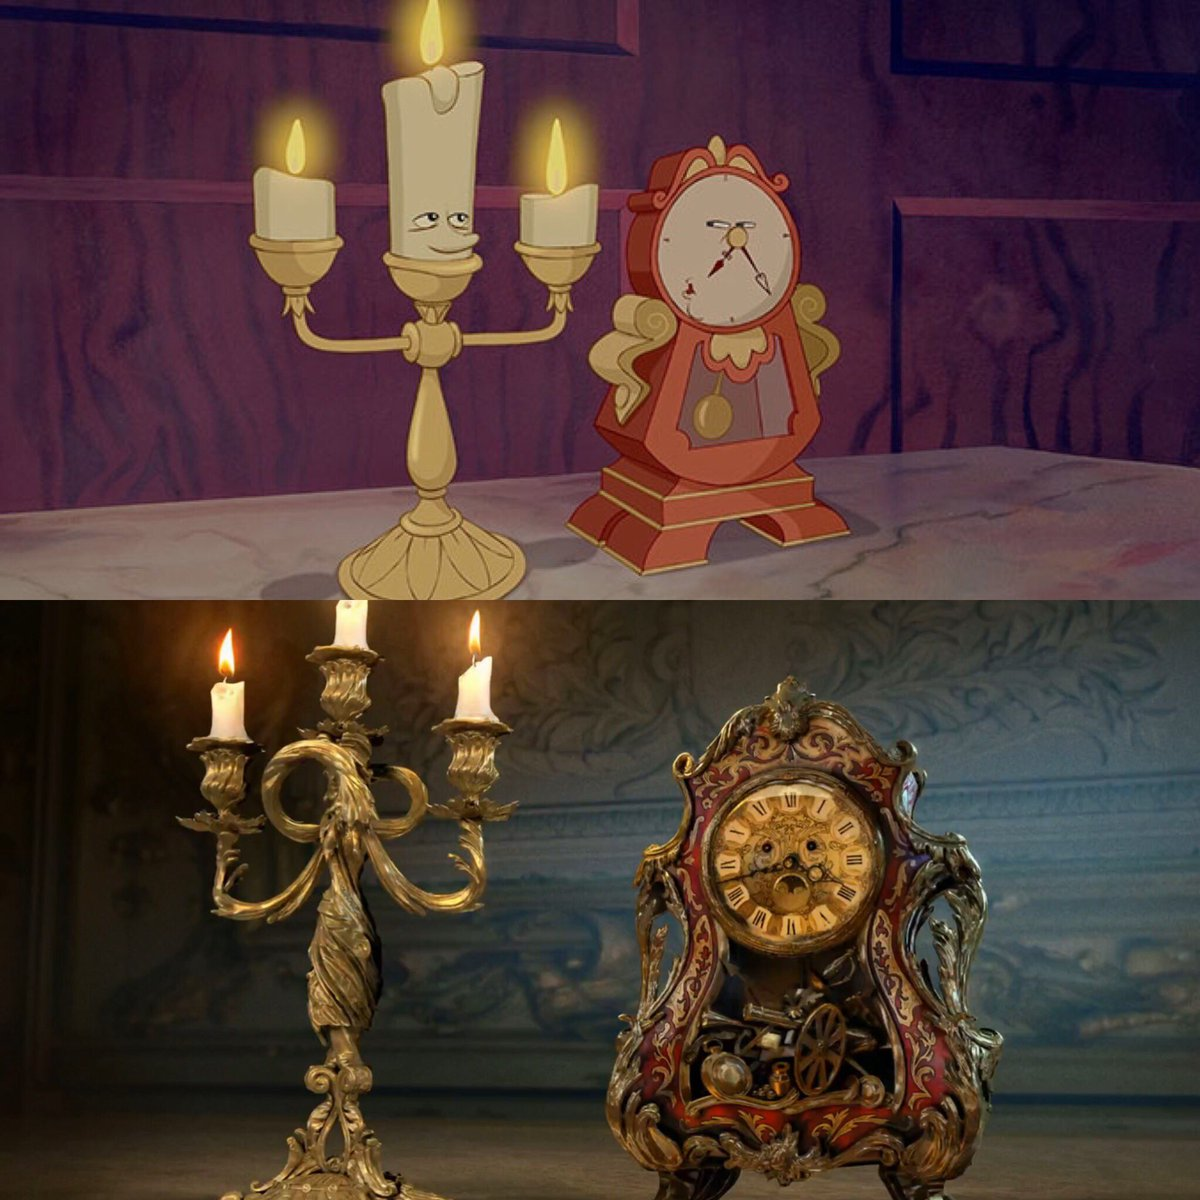 First Look at Lumiere and Cogsworth